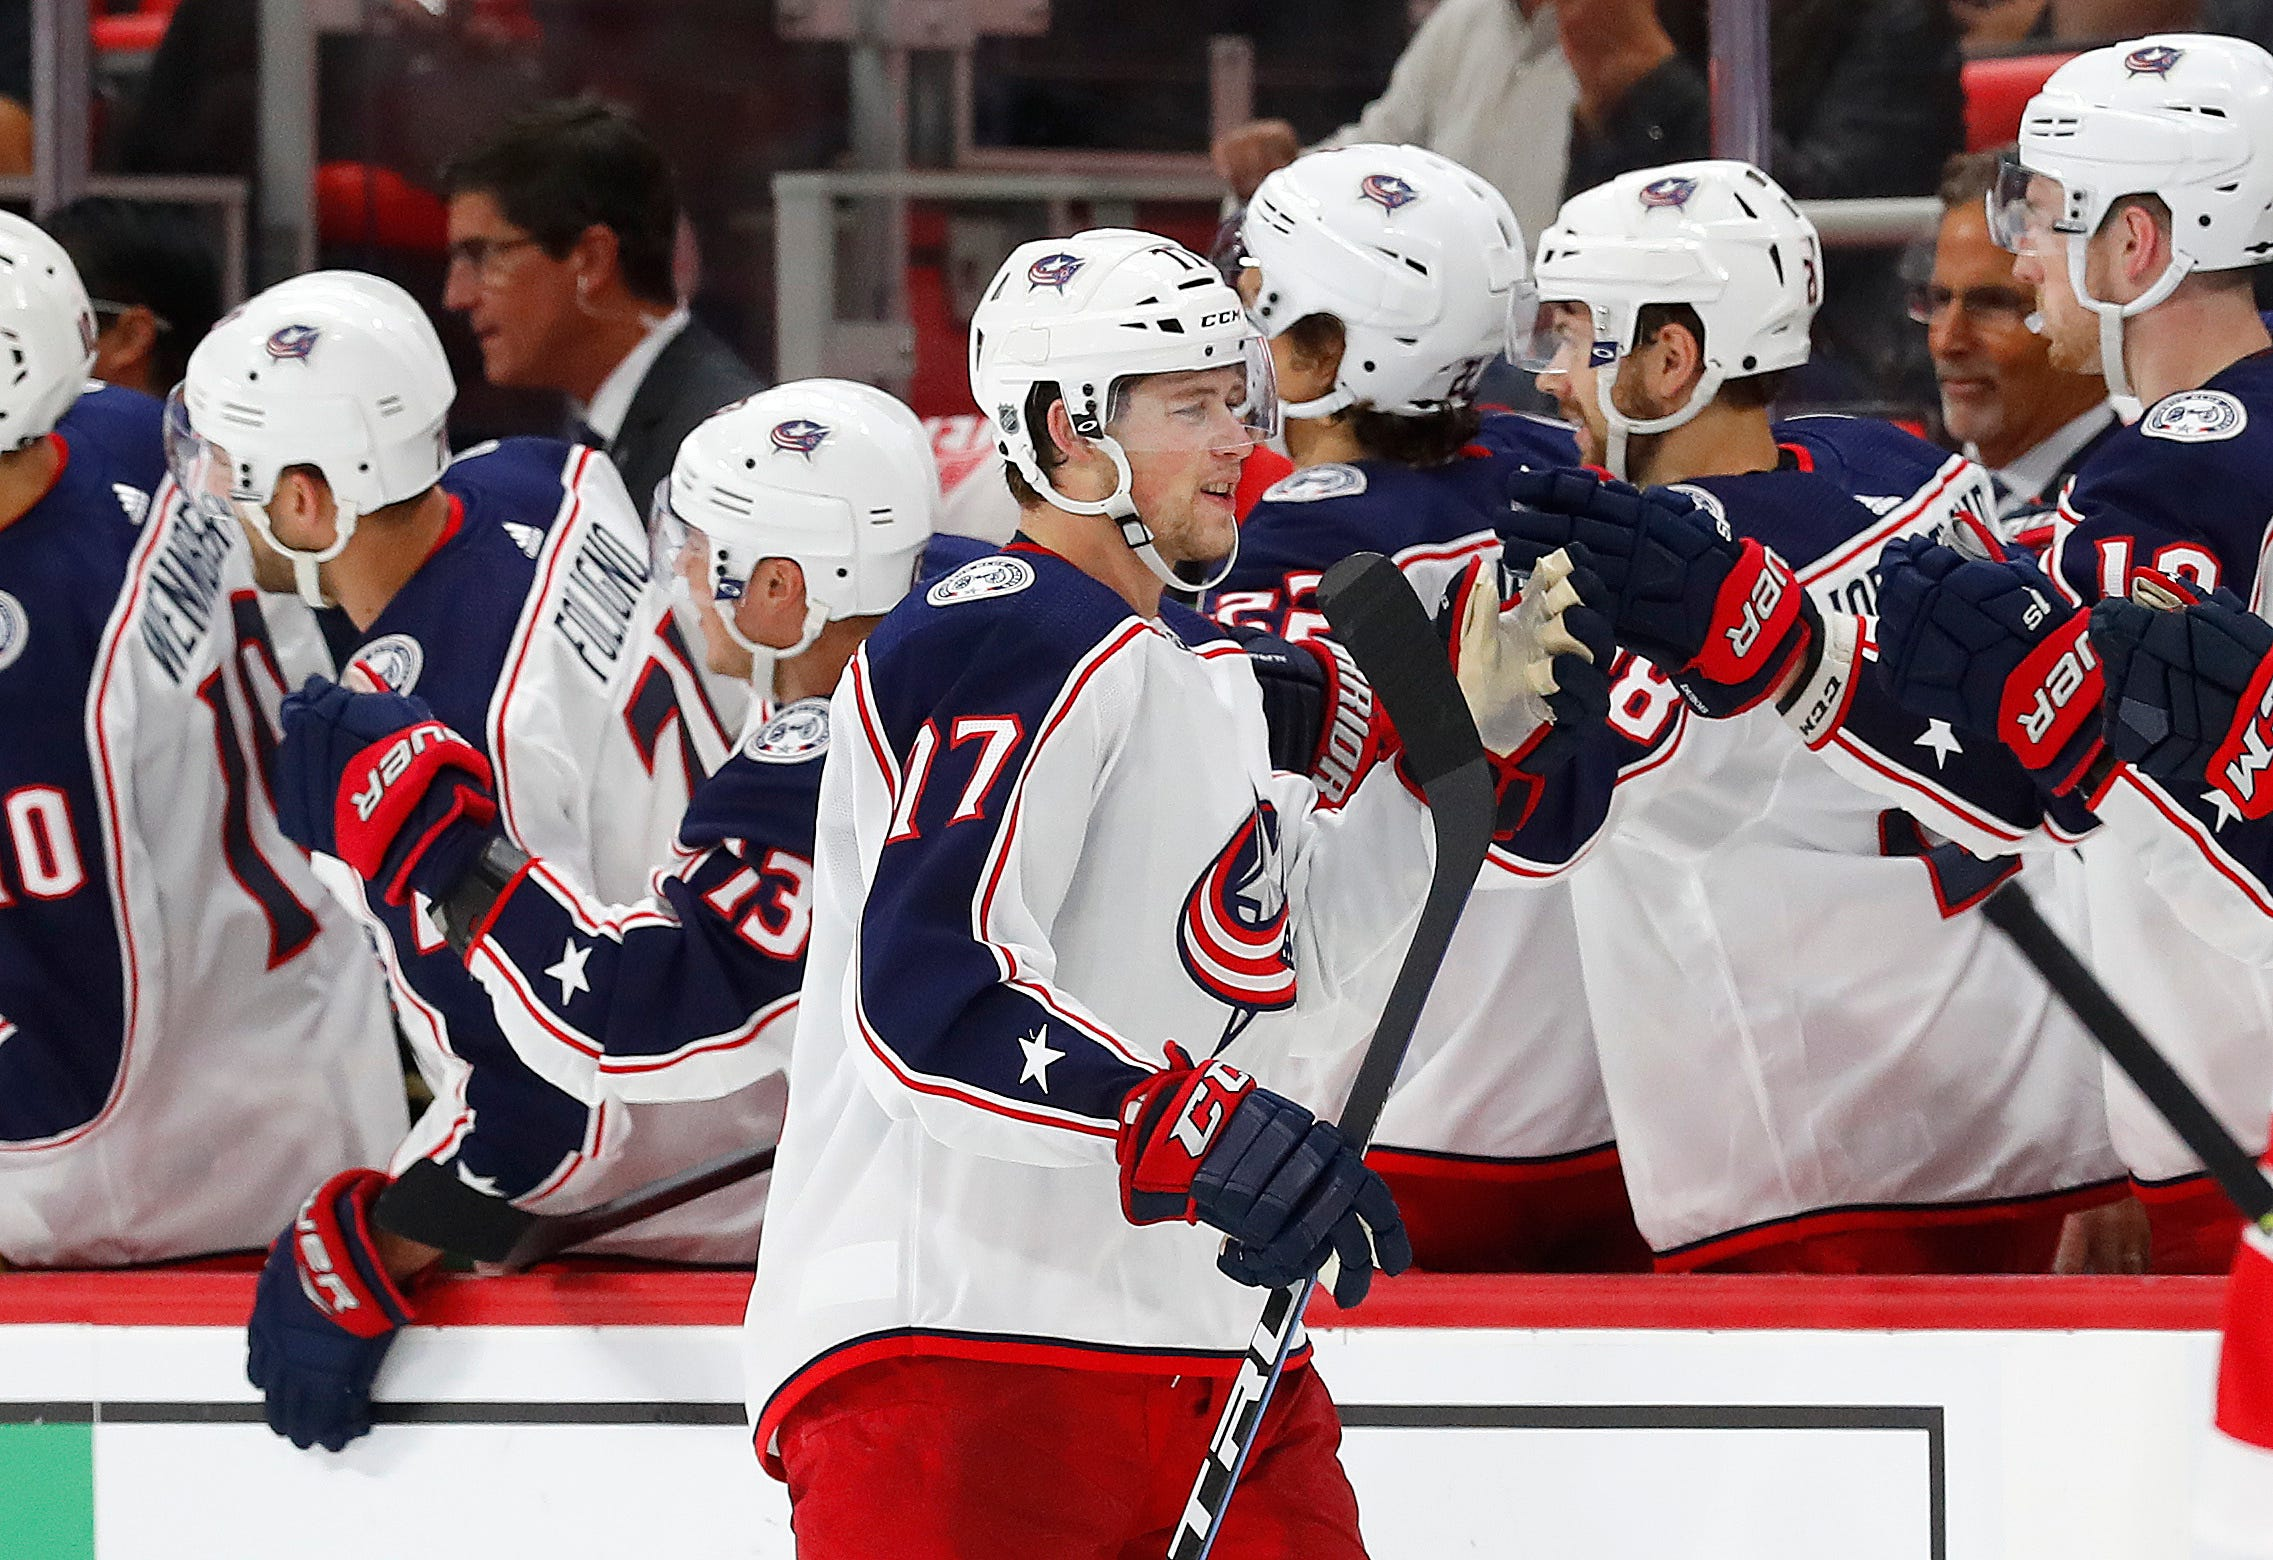 Blue Jackets' Dubinsky out 4-6 weeks with strained oblique